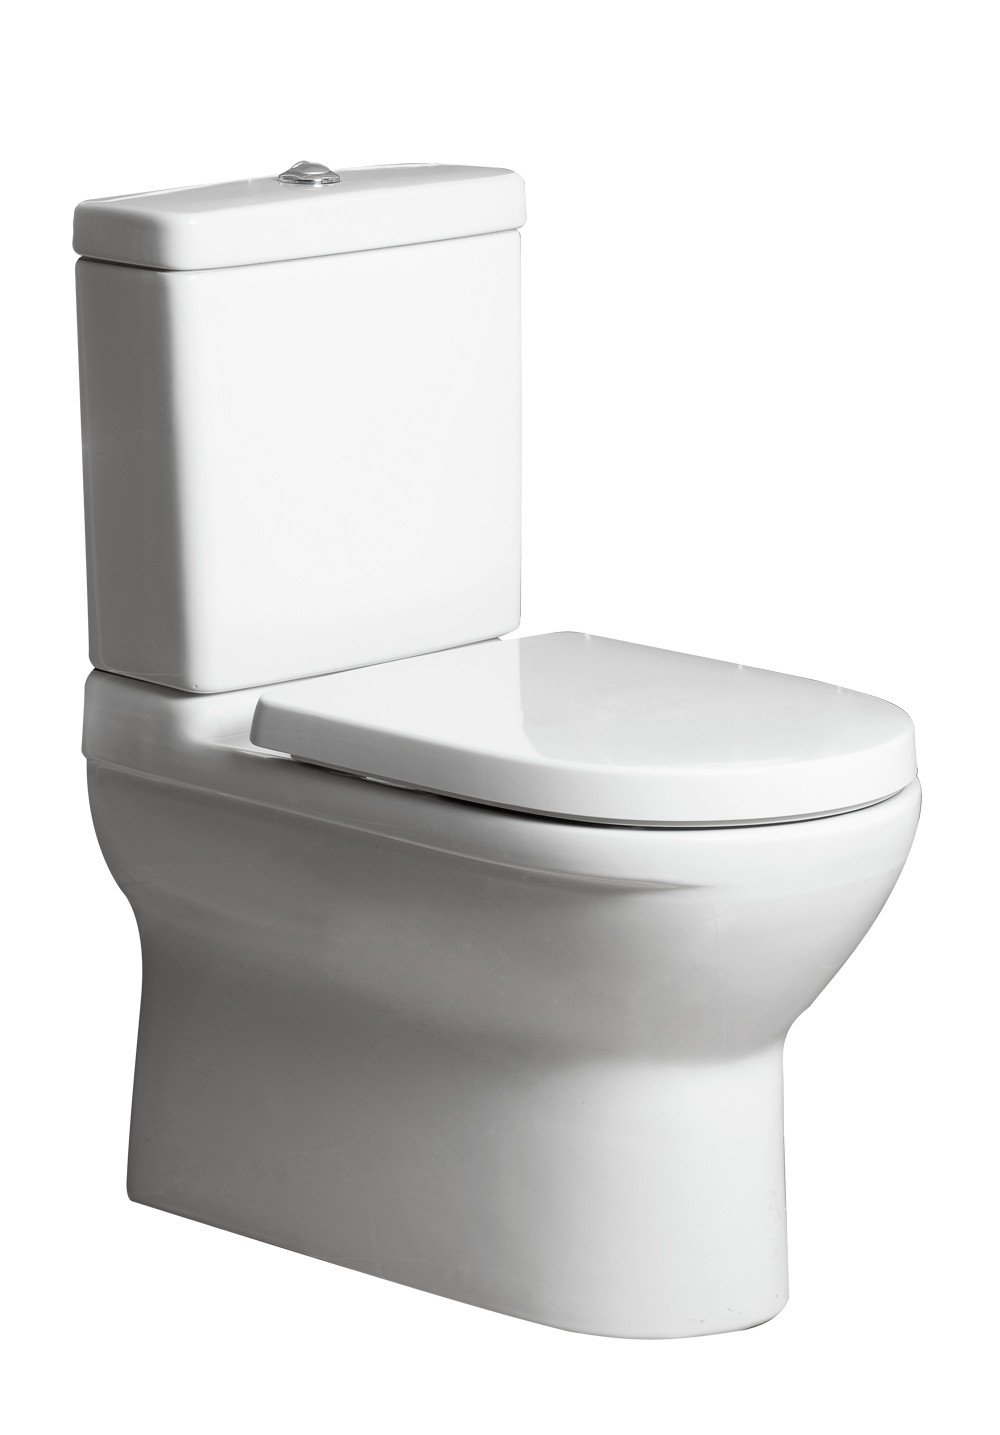 O. Novo Back To Wall Toilet Suite 4.5/3L Villeroy & Boch